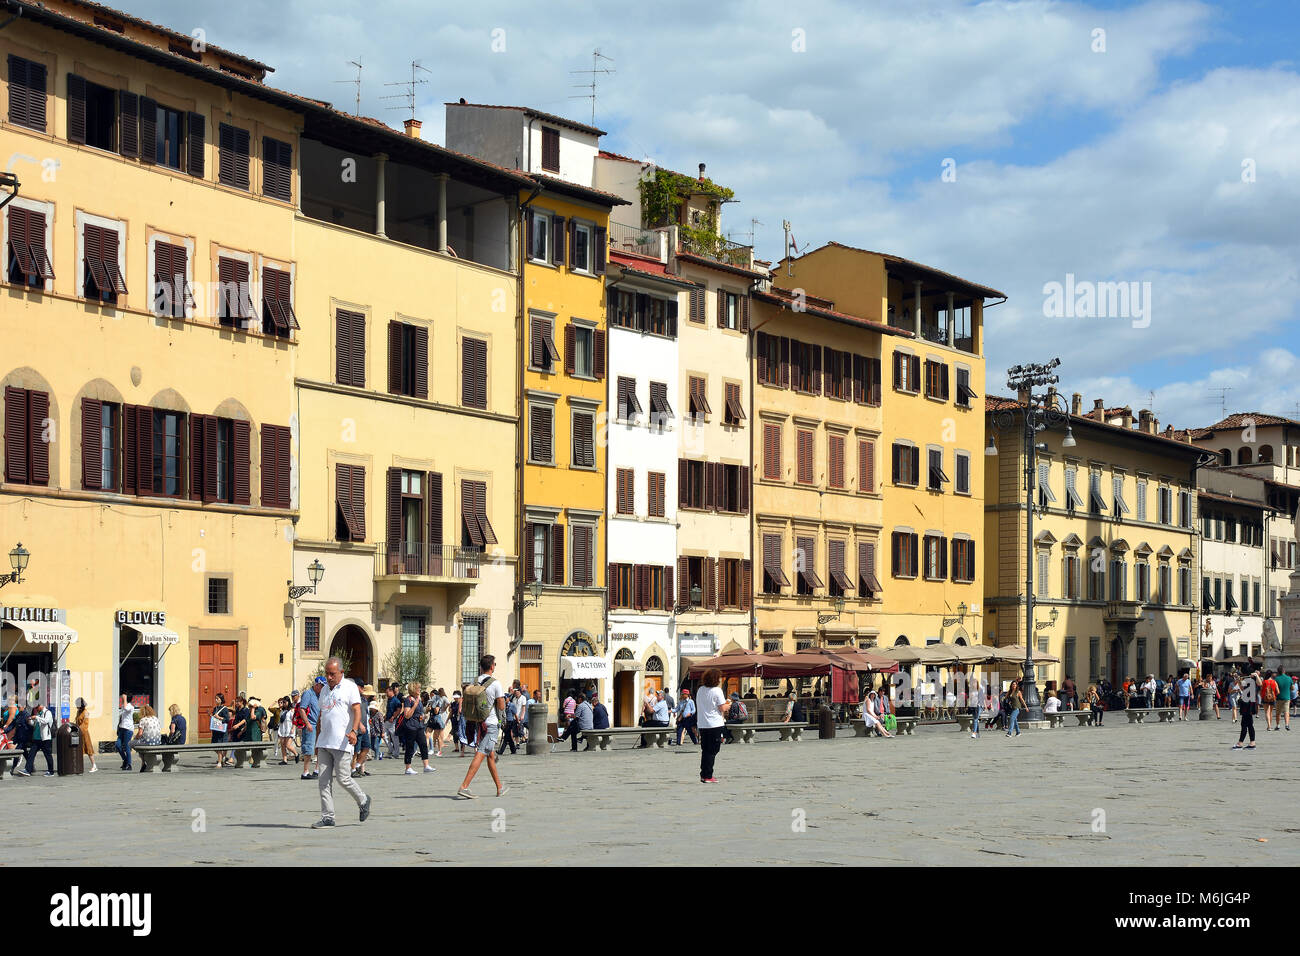 Florence, Tuscany, Italy - September 14, 2017: Tourists on the Piazza Santa Croce in Florence - Italy. - Stock Image